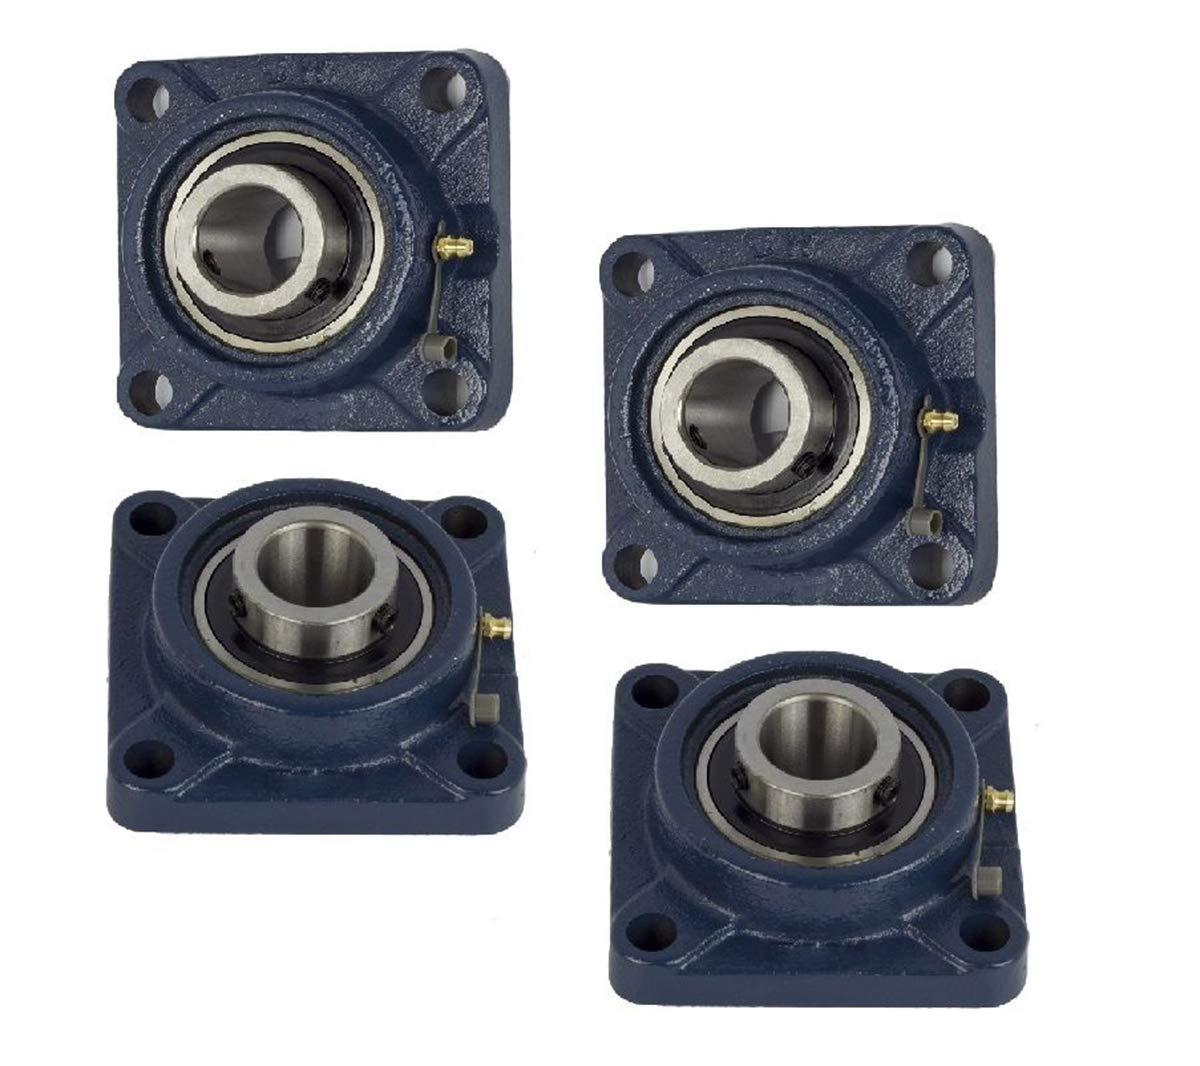 Jeremywell 4 Pieces- Popular products UCF201-8 Pillow Block Popular overseas inch 1 Bearing 2 Size